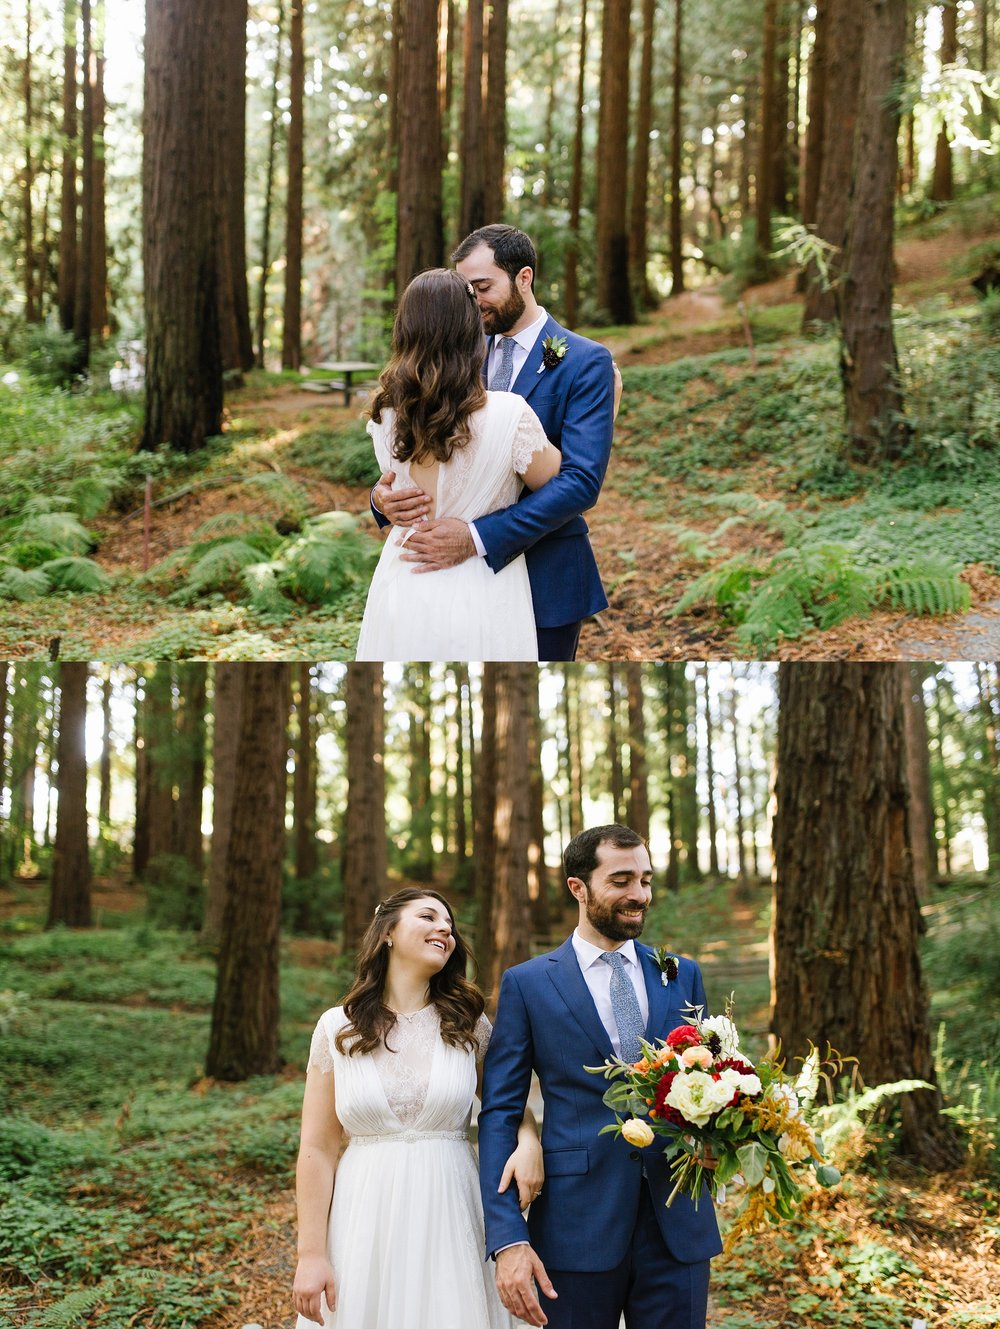 noahhannah_redwoods_botanical_wedding_berkeley_cdp_0015.jpg